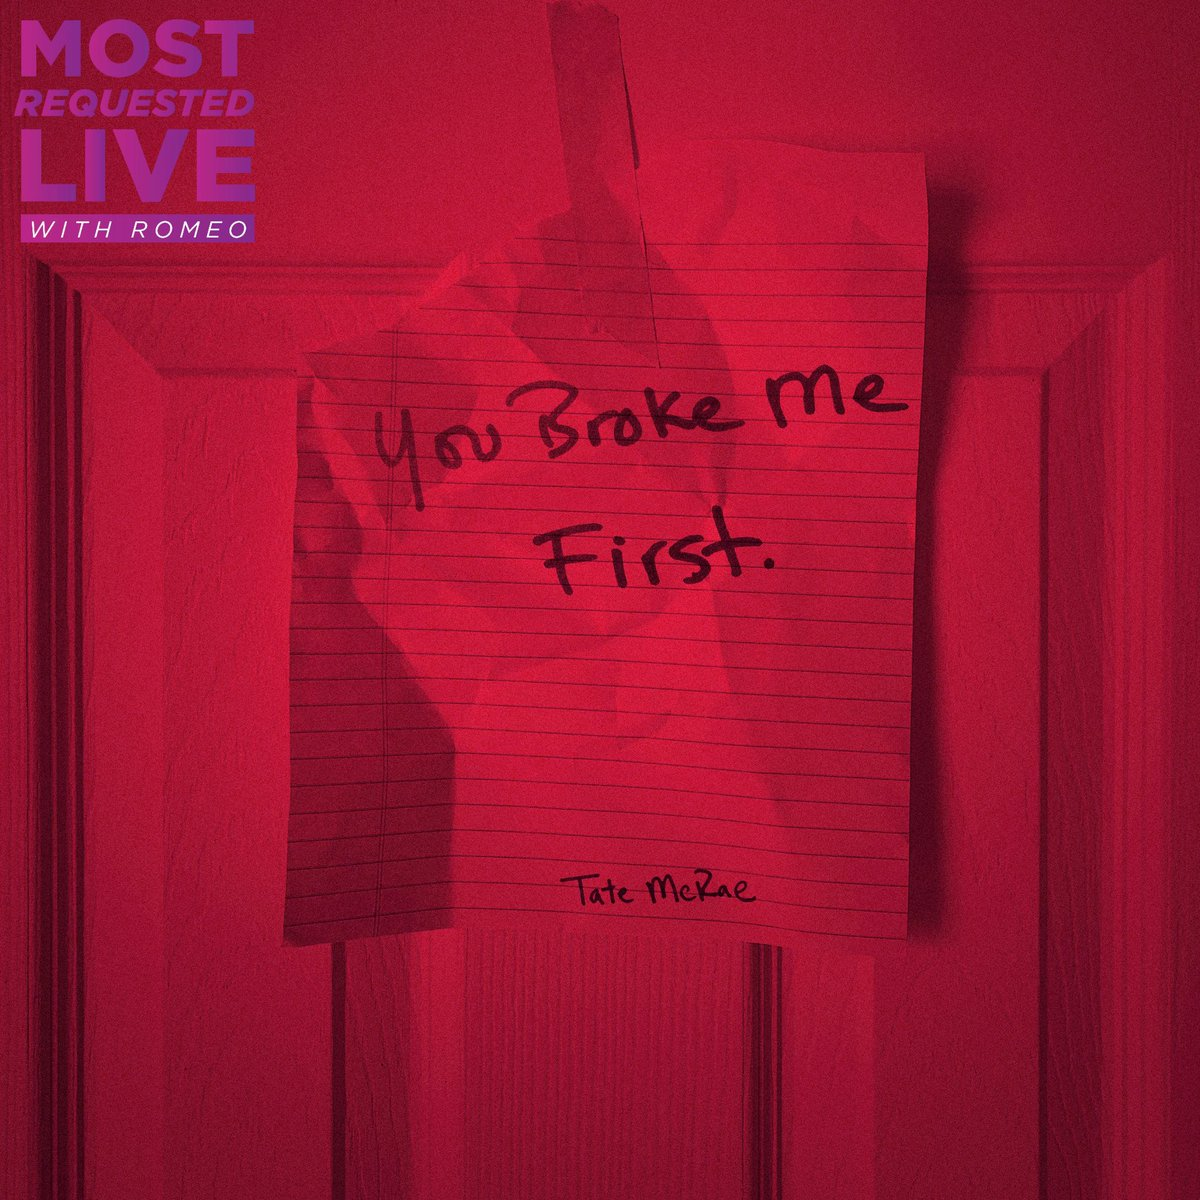 I Request #YouBrokeMeFirst @tatemcrae On The #TWITTAMIX With @OnAirRomeo And @JayMacRadio On #MostRequestedLive! @MostRequestLive @t_brat